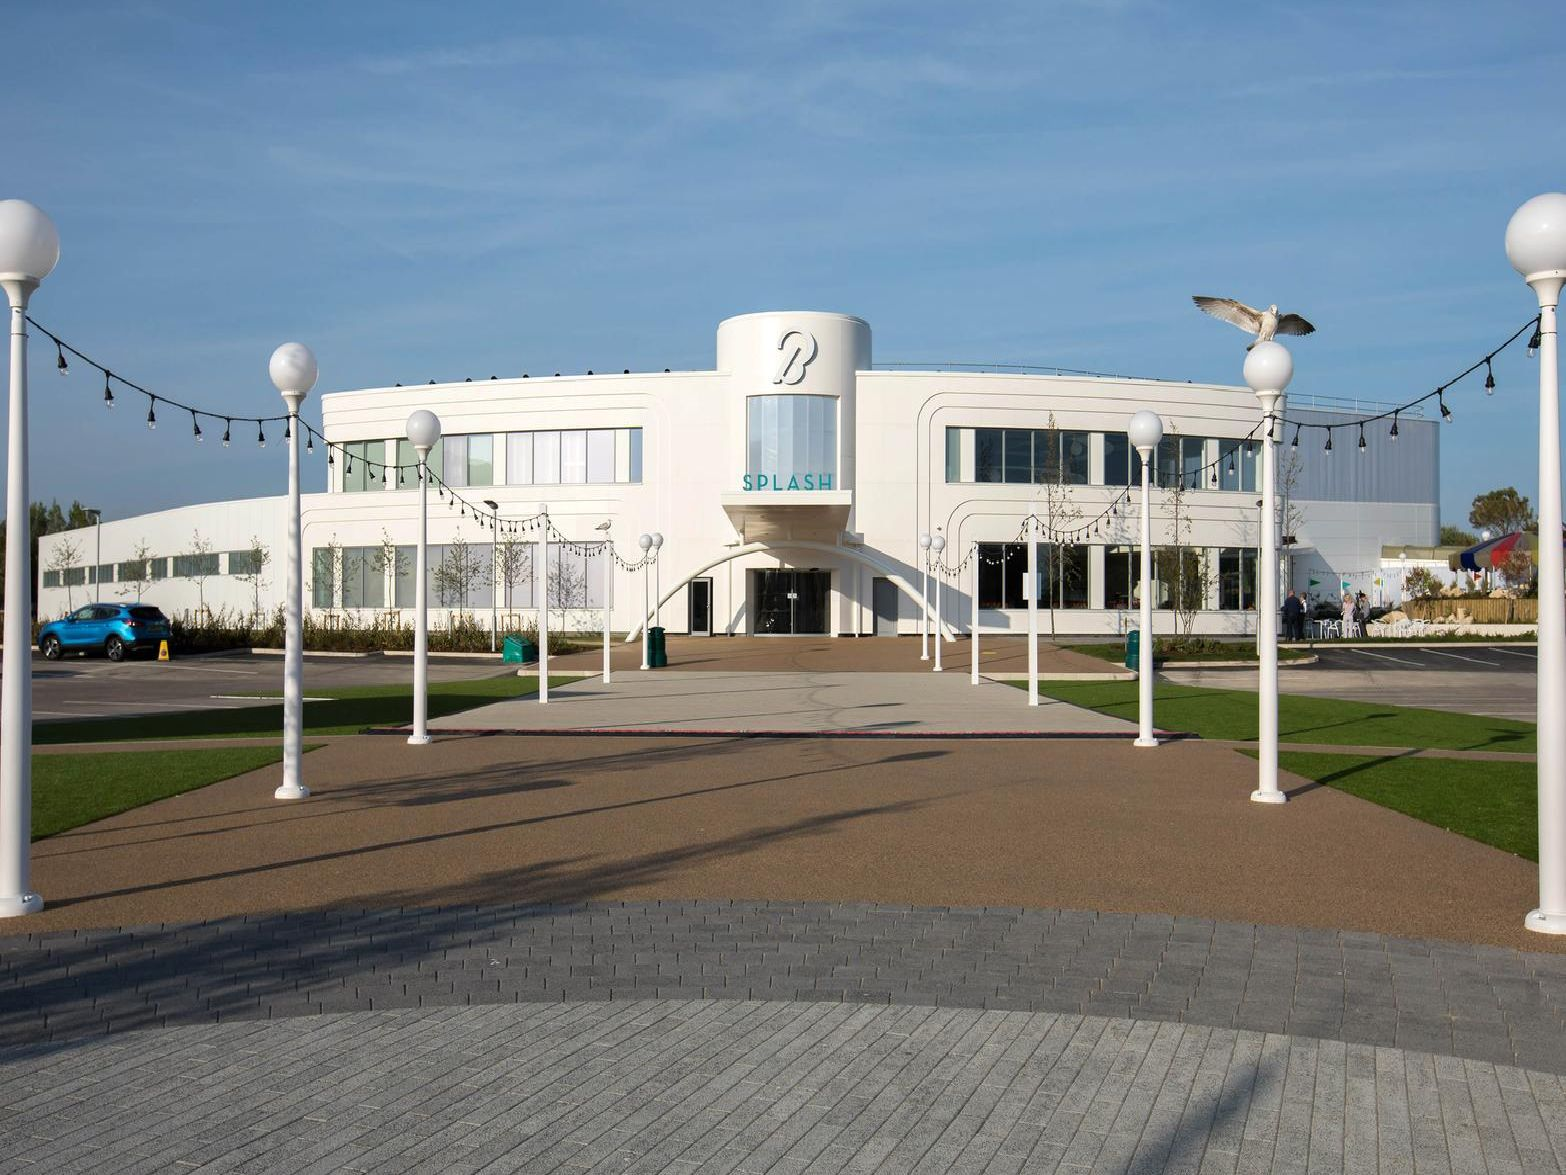 General view of the new Splash 40m swimming pool, which has now officially opened at Butlins holiday resort in Bognor Regis, West Sussex.